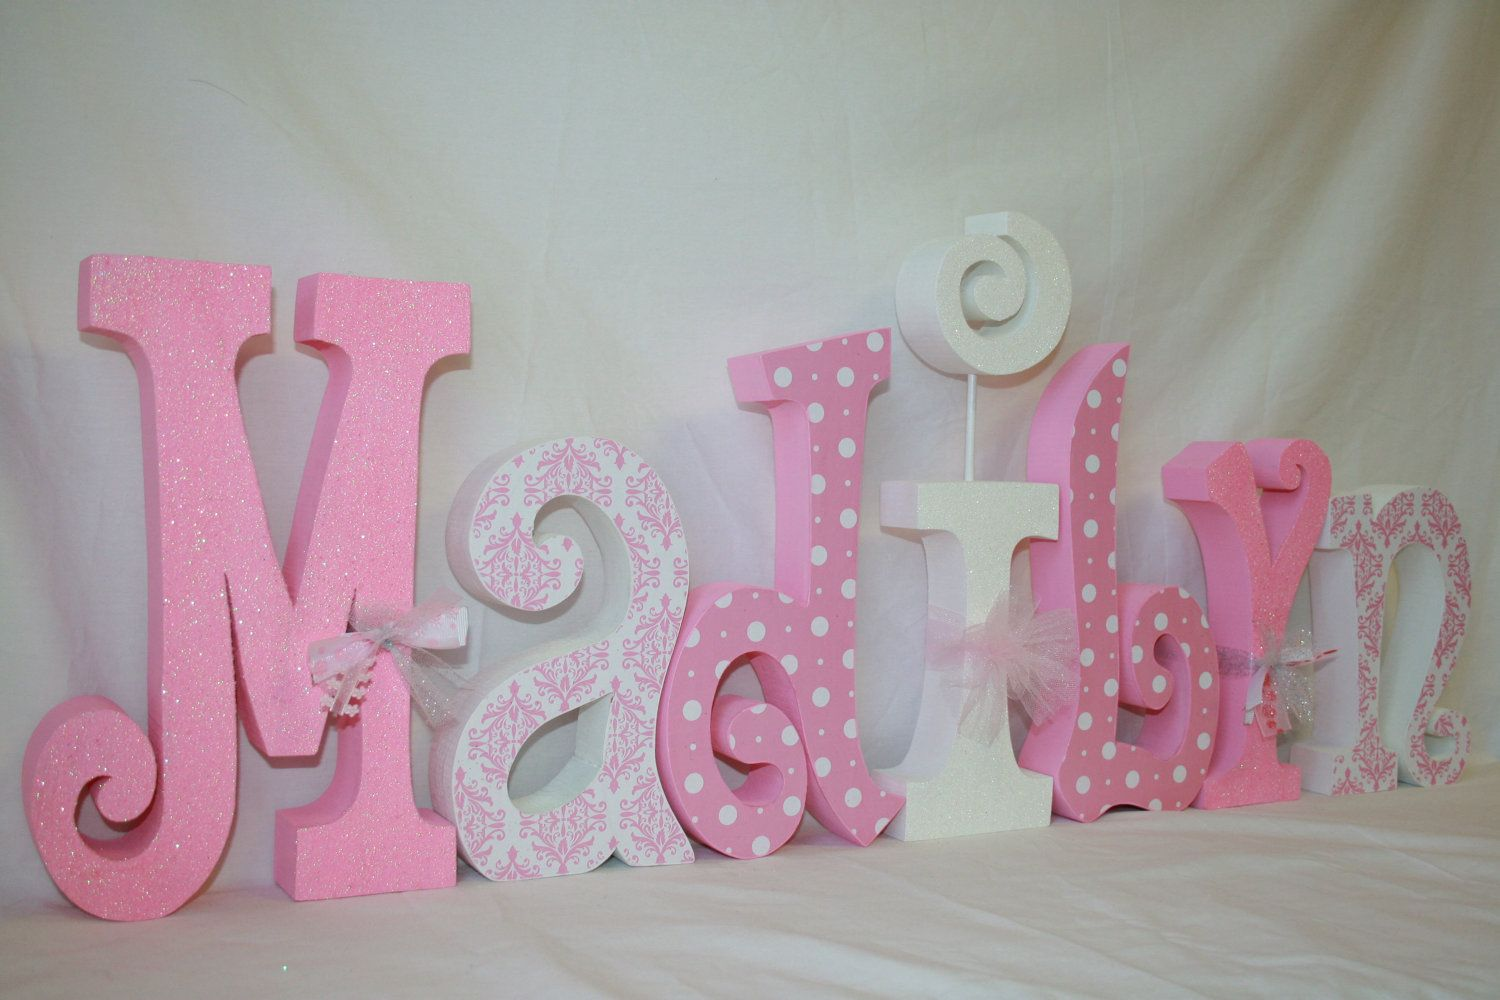 girl decor pink and white white polka dots 7 letter set girls room girl nursery kids room decor nursery letters hanging letters